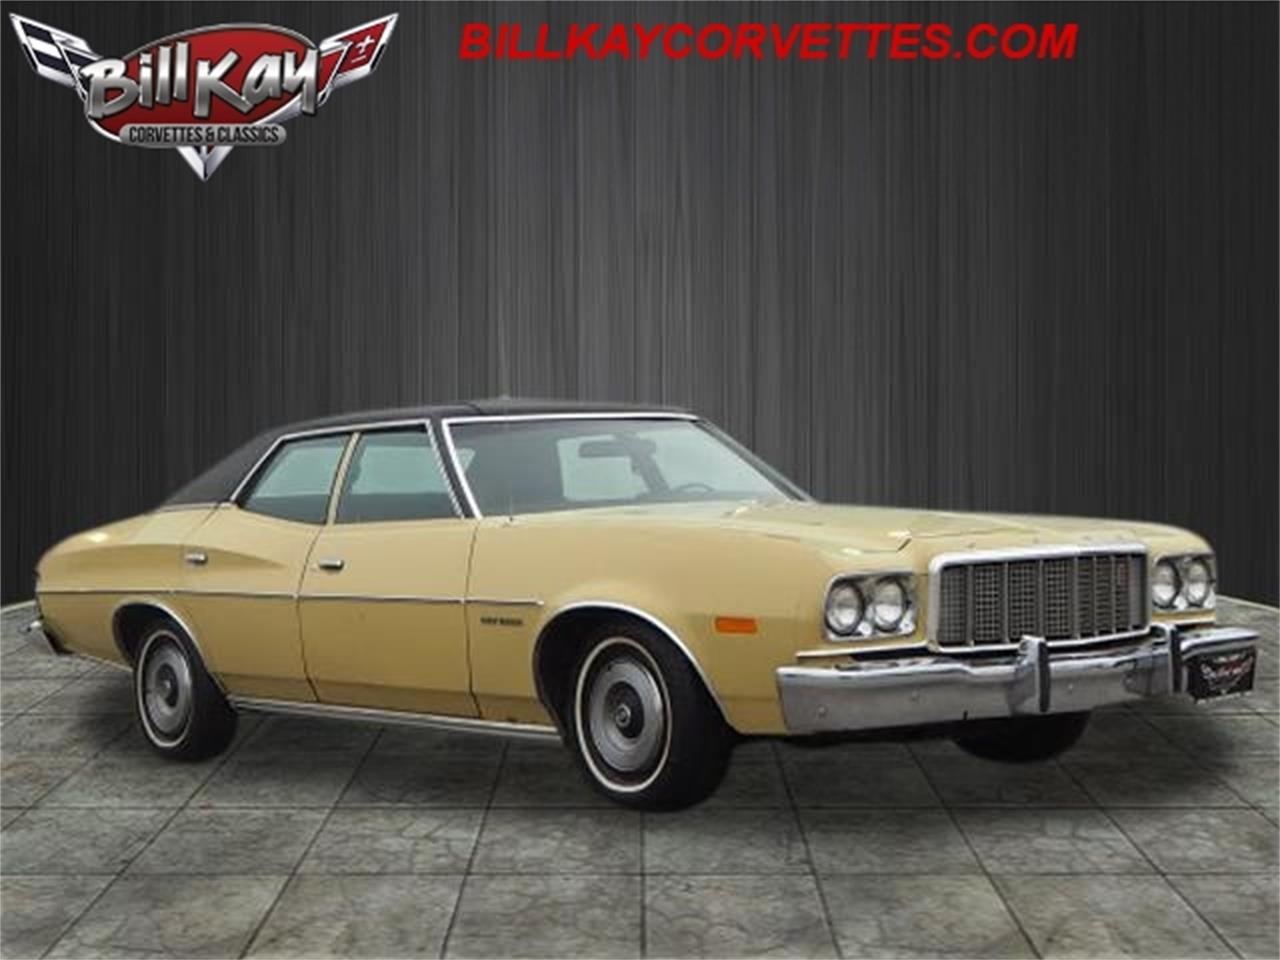 for sale 1974 ford gran torino in downers grove, illinois cars - downers grove, il at geebo